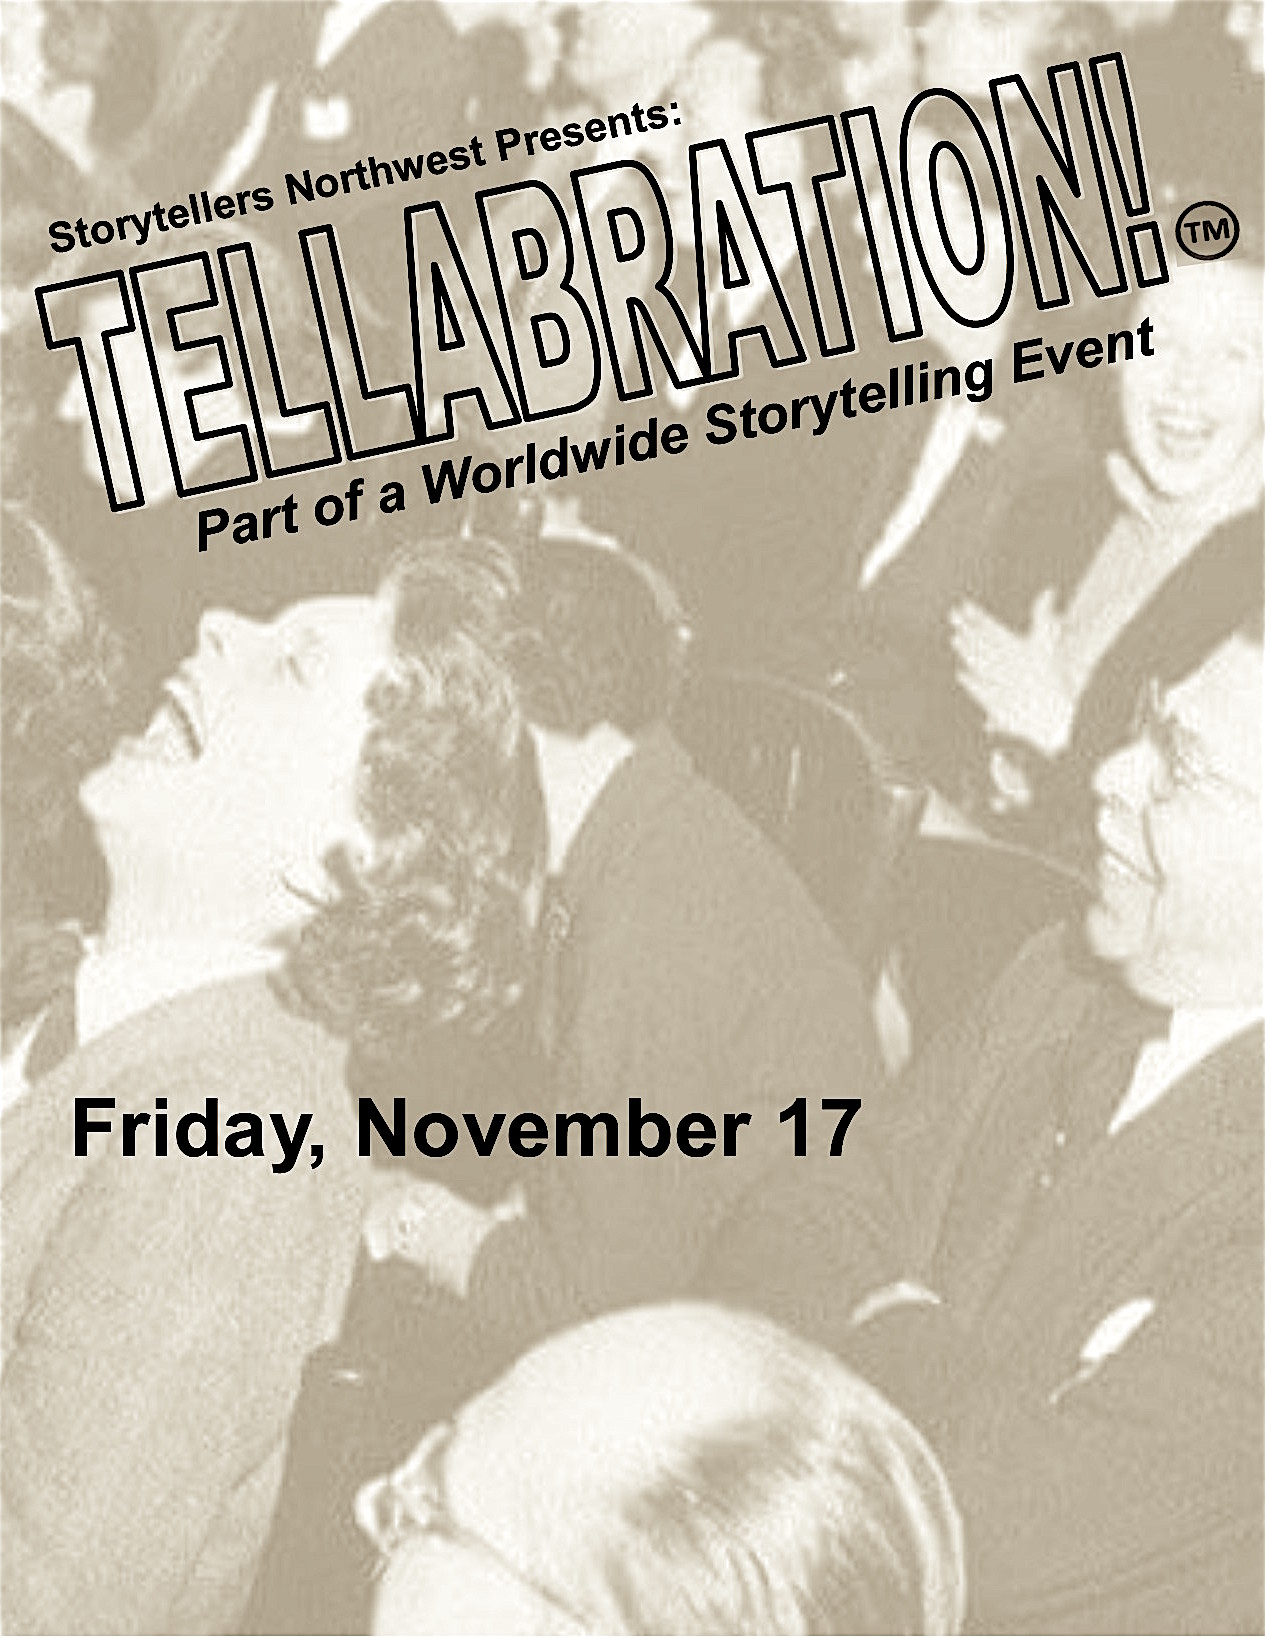 Tellabration! (TM)